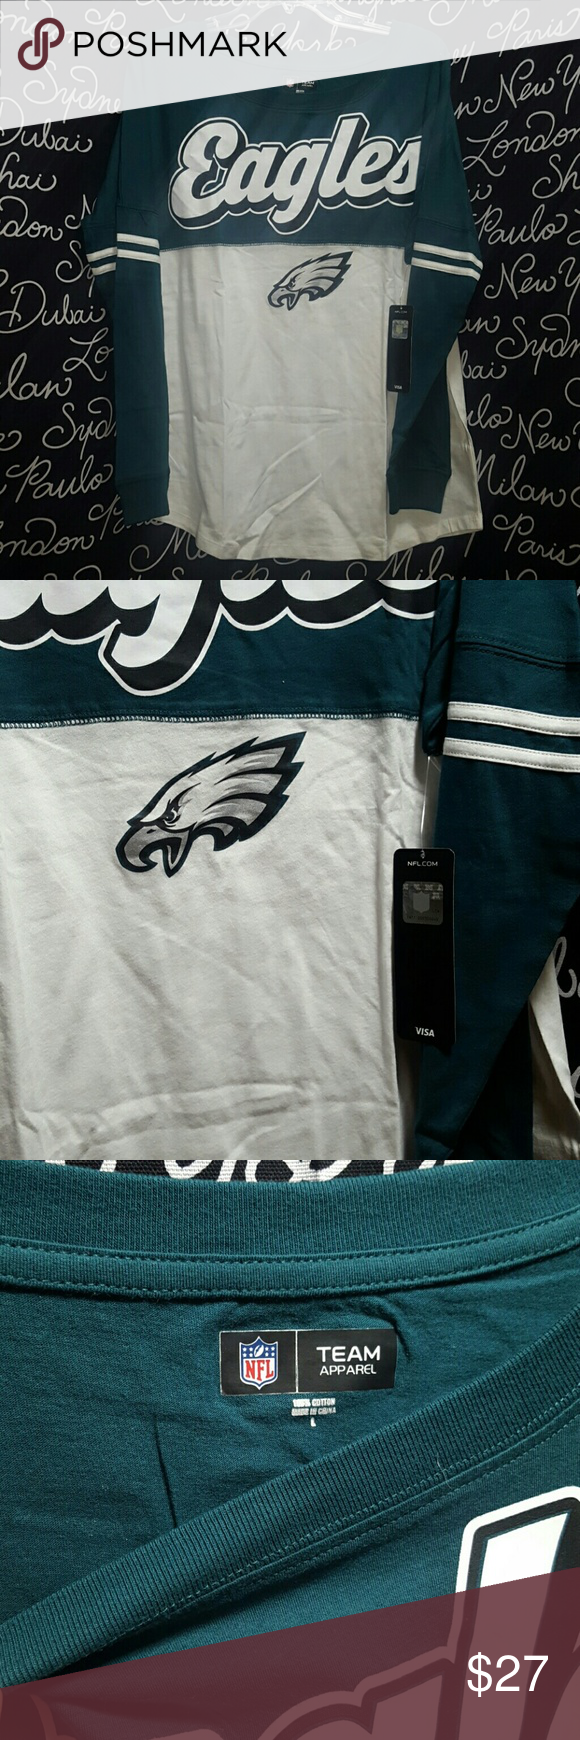 NWT Women's NFL Philadelphia Eagles ❤NWT❤, Long sleeve,  Philadelphia Eagles,  Varsity spirit baby Jersey tee , cotton , crew neck machine washable inside out with authentic NFL team apparel tag attached.    Please ask any and all questions before purchasing this item. NFL TEAM GEAR  Tops Tees - Long Sleeve